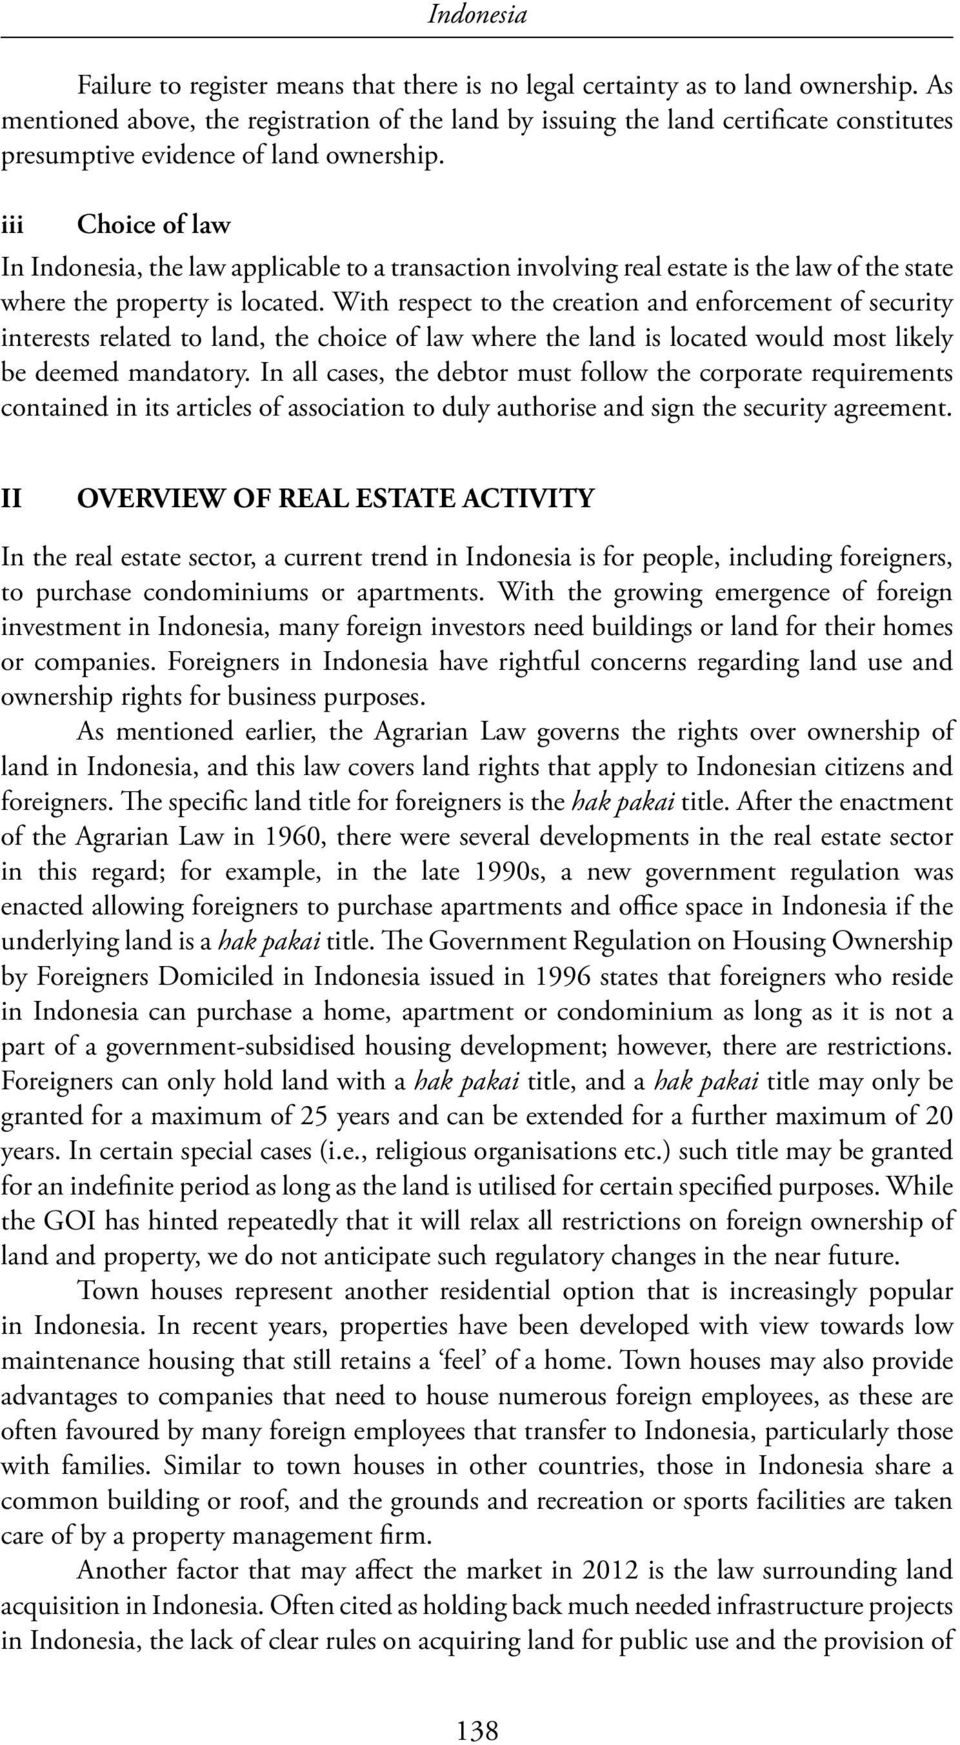 iii Choice of law In Indonesia, the law applicable to a transaction involving real estate is the law of the state where the property is located.